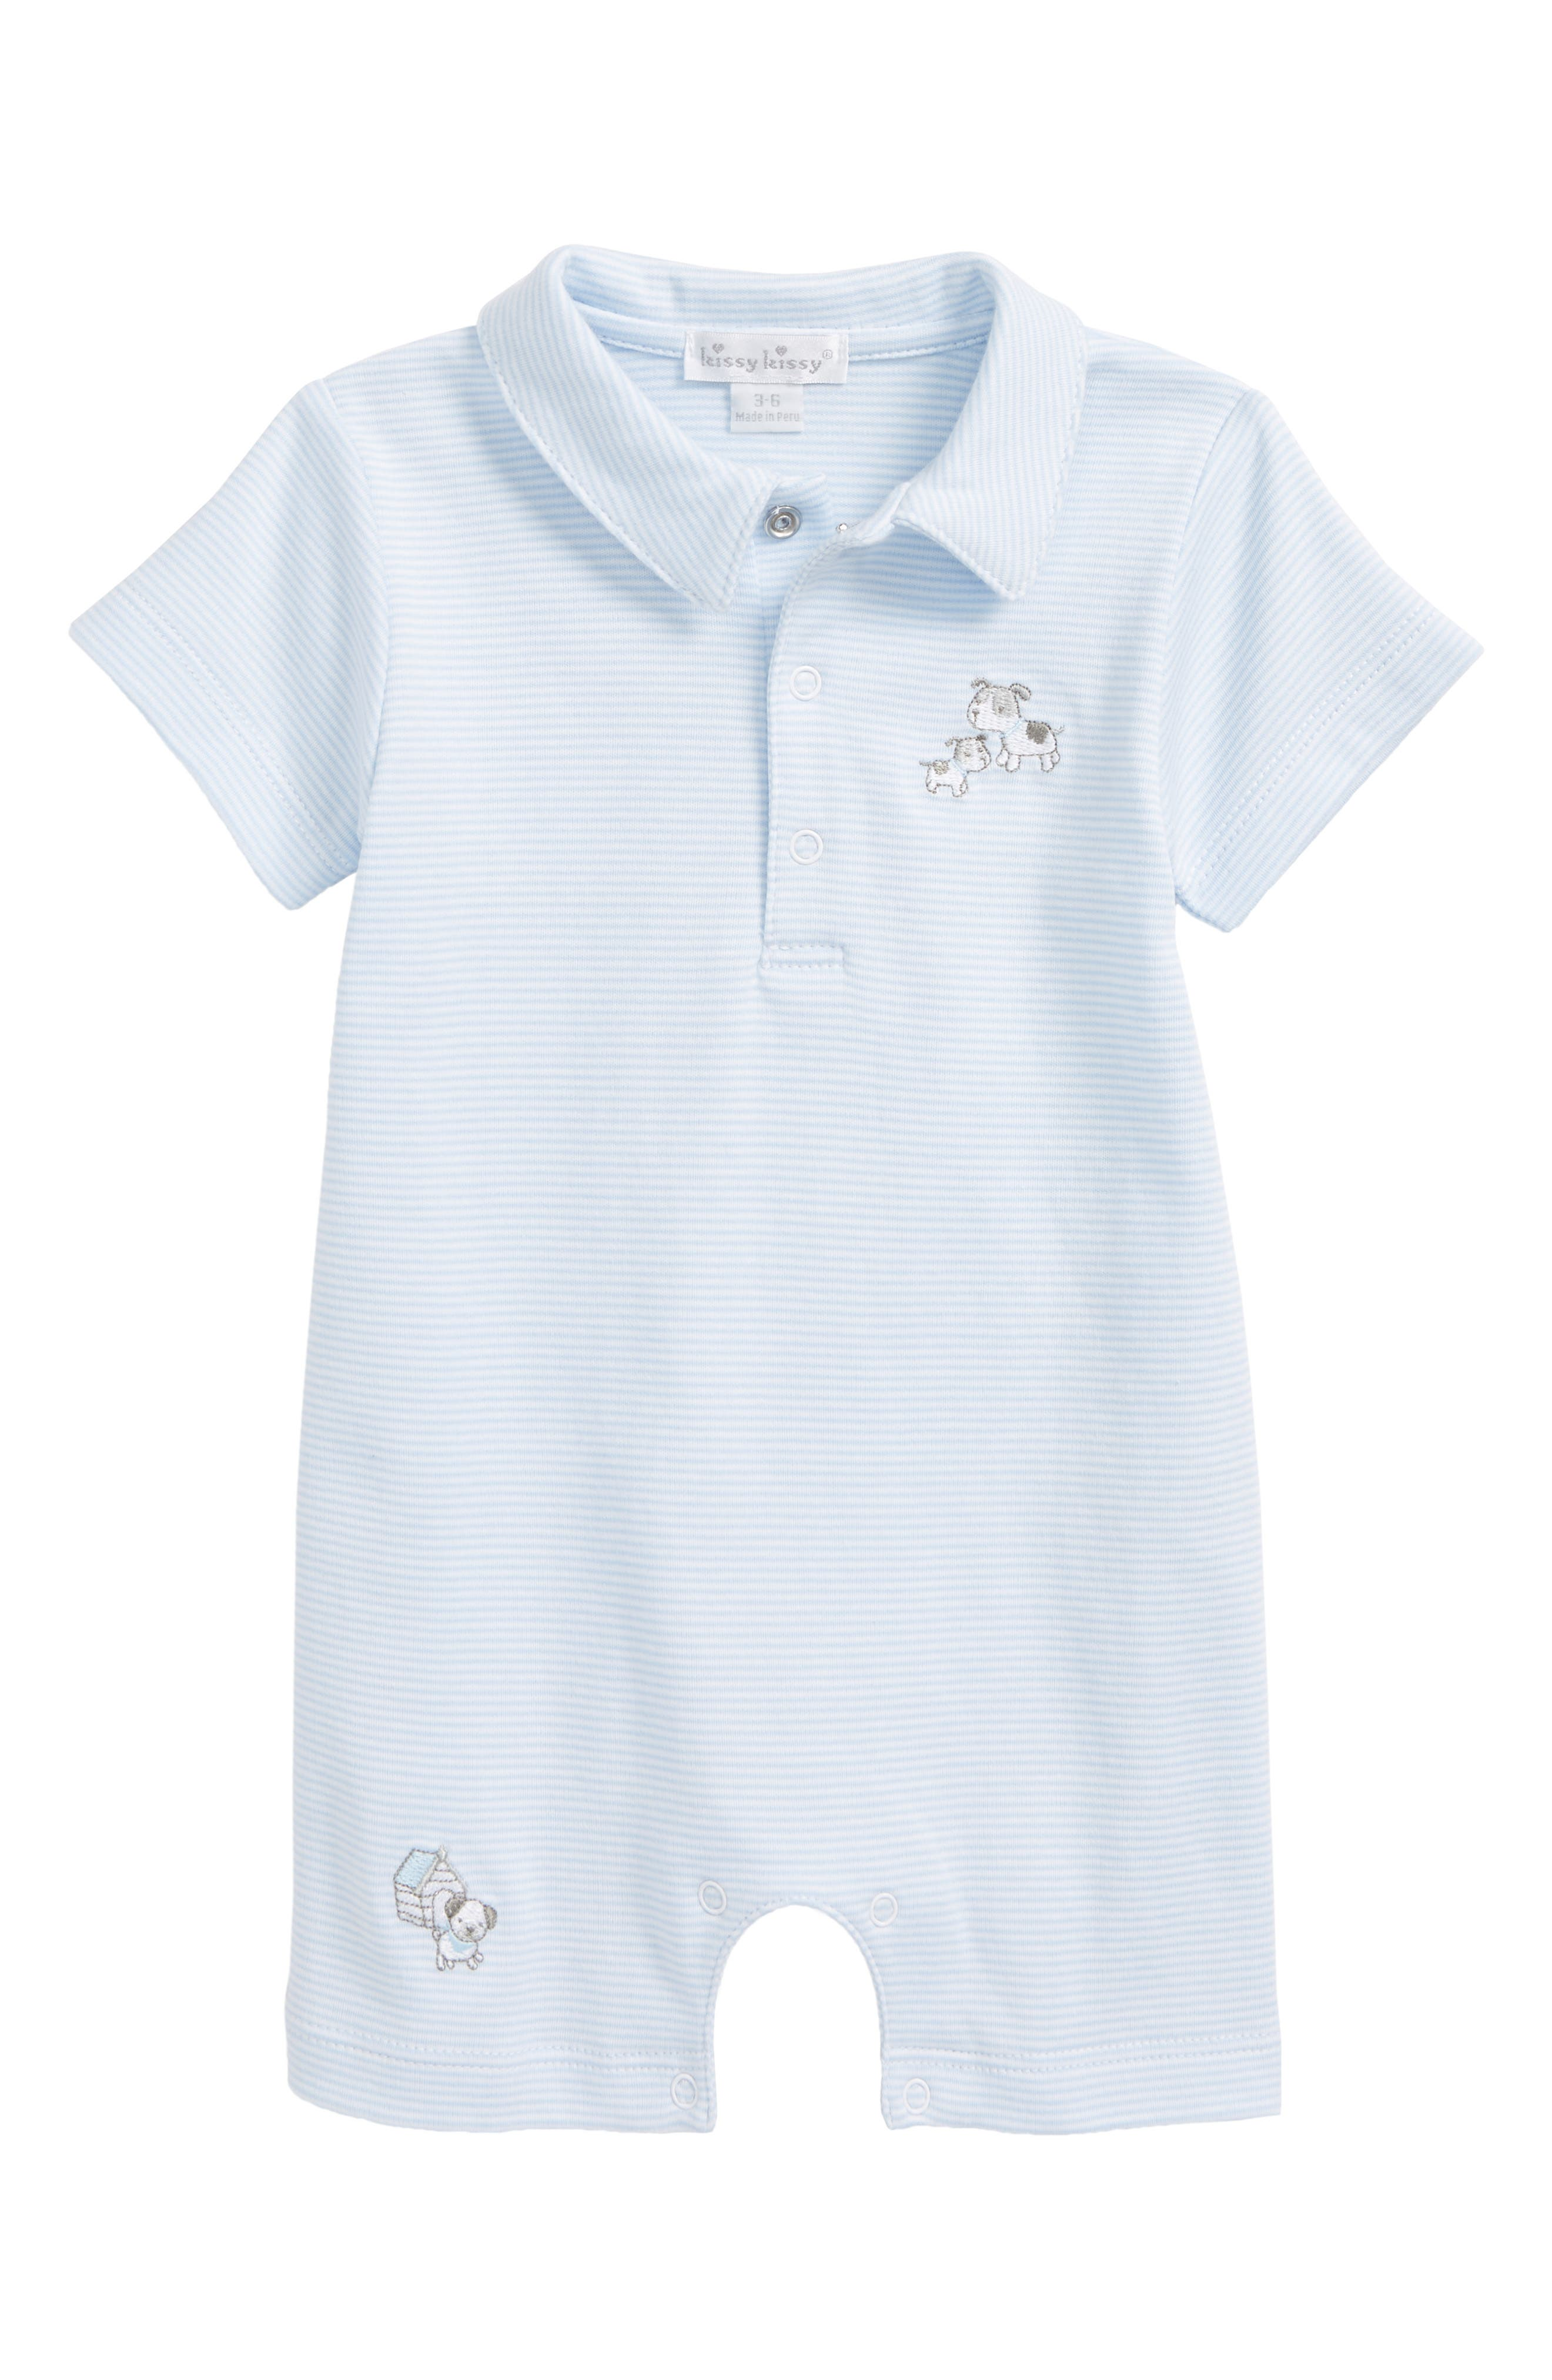 Dog Day Out Polo Romper,                         Main,                         color, Light Blue